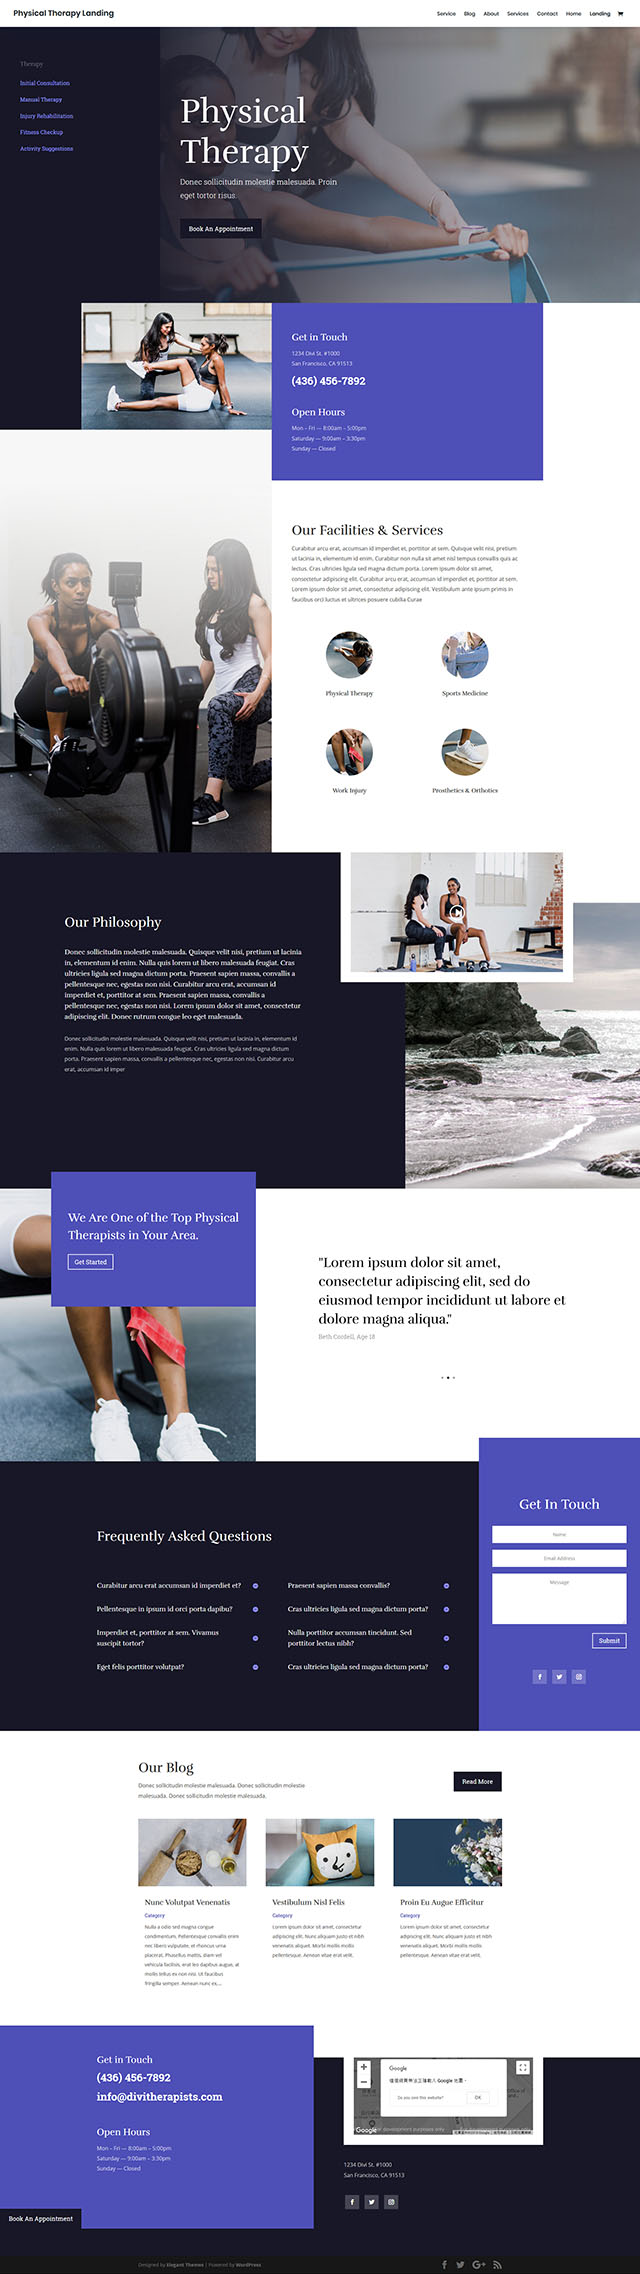 FREE Physical Therapy Layout Pack 免費下載物理治療示範頁面組合